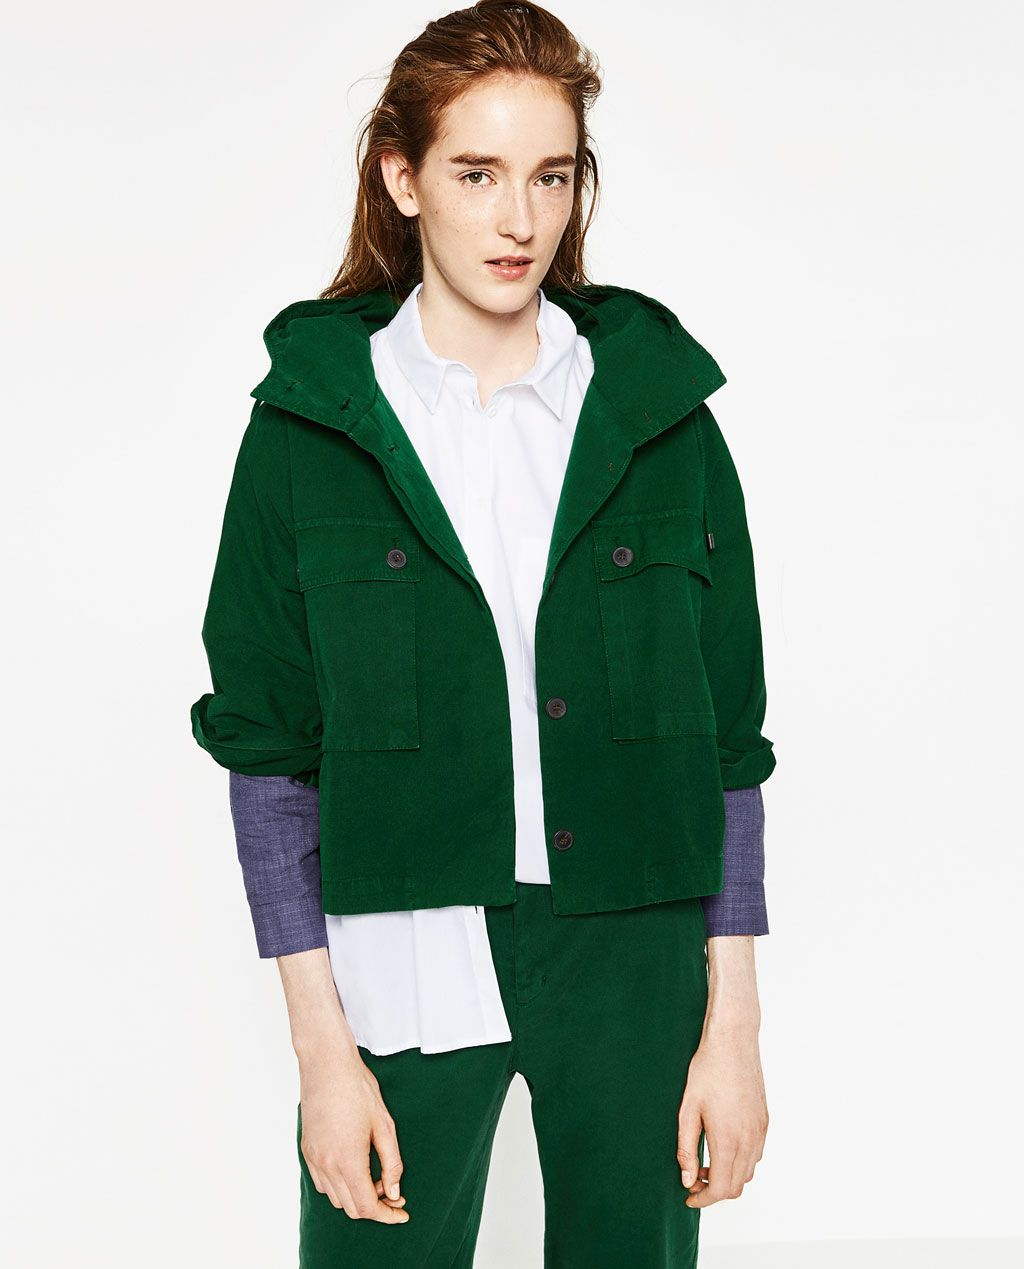 ZARA - WOMAN - SHORT COTTON PARKA | stuff | Pinterest | Zara women ...